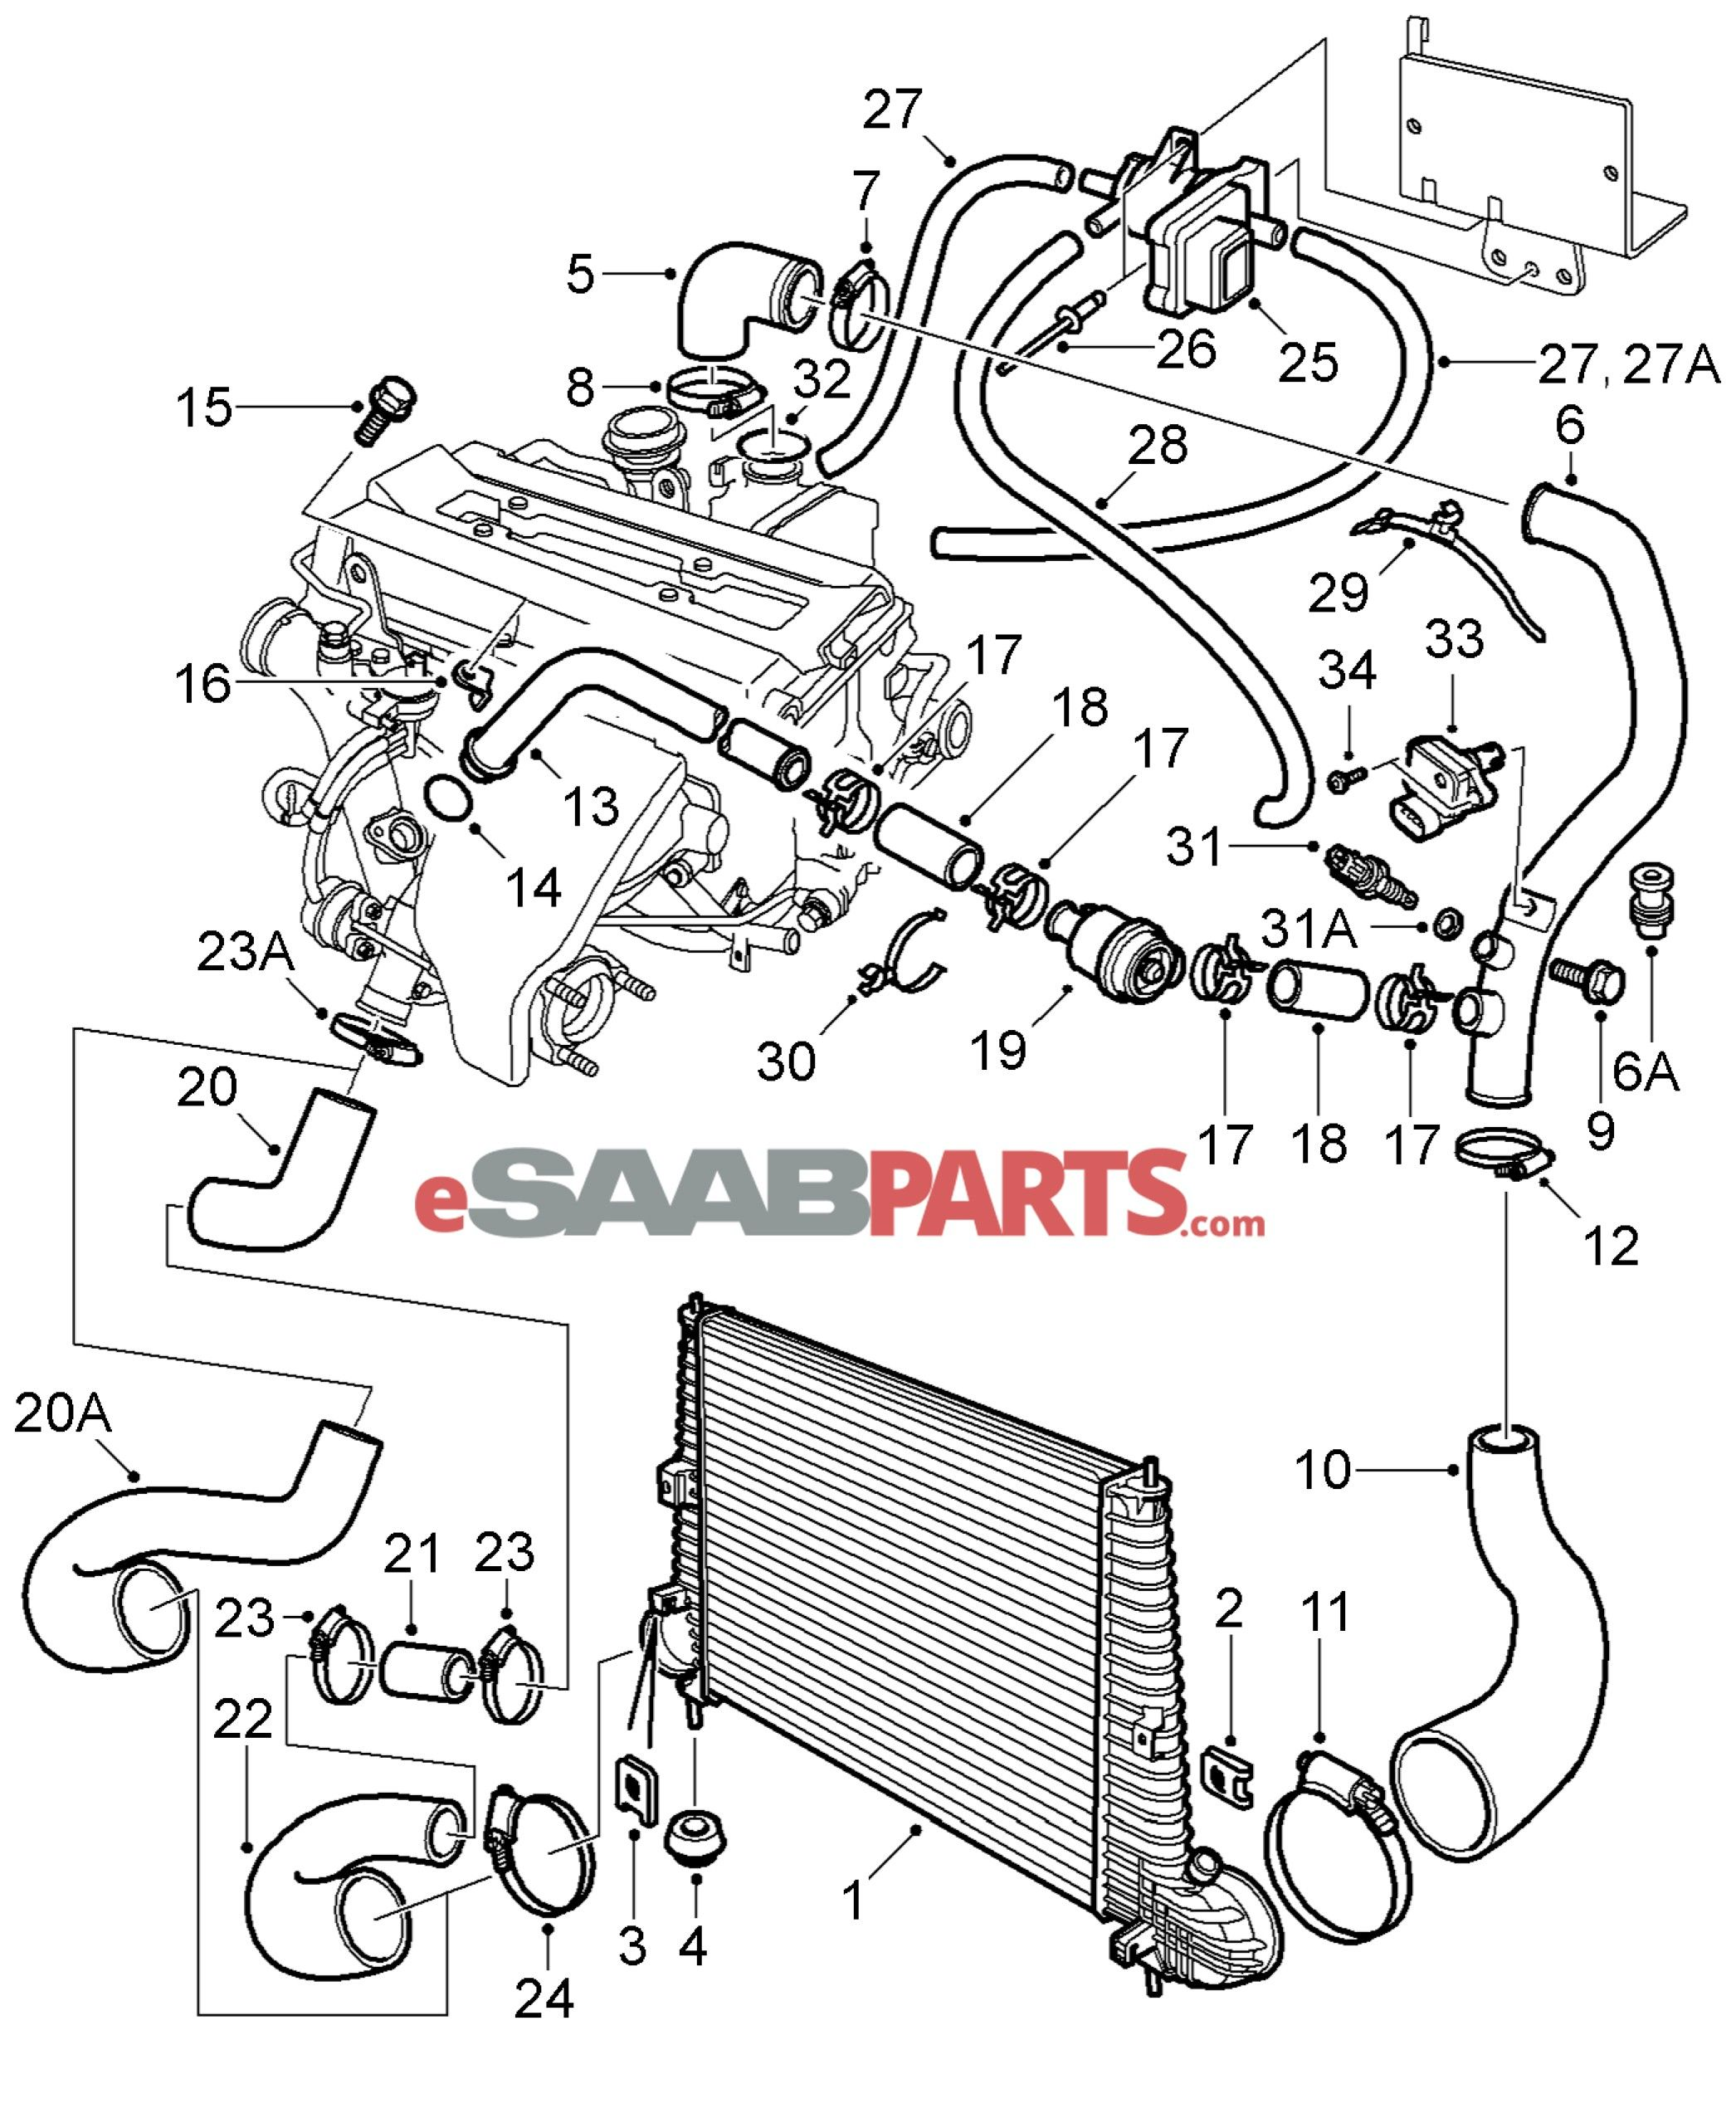 saab engine diagram group electrical schemes 2003 saab 9-3 turbo saab 9 3 parts diagram wiring diagram